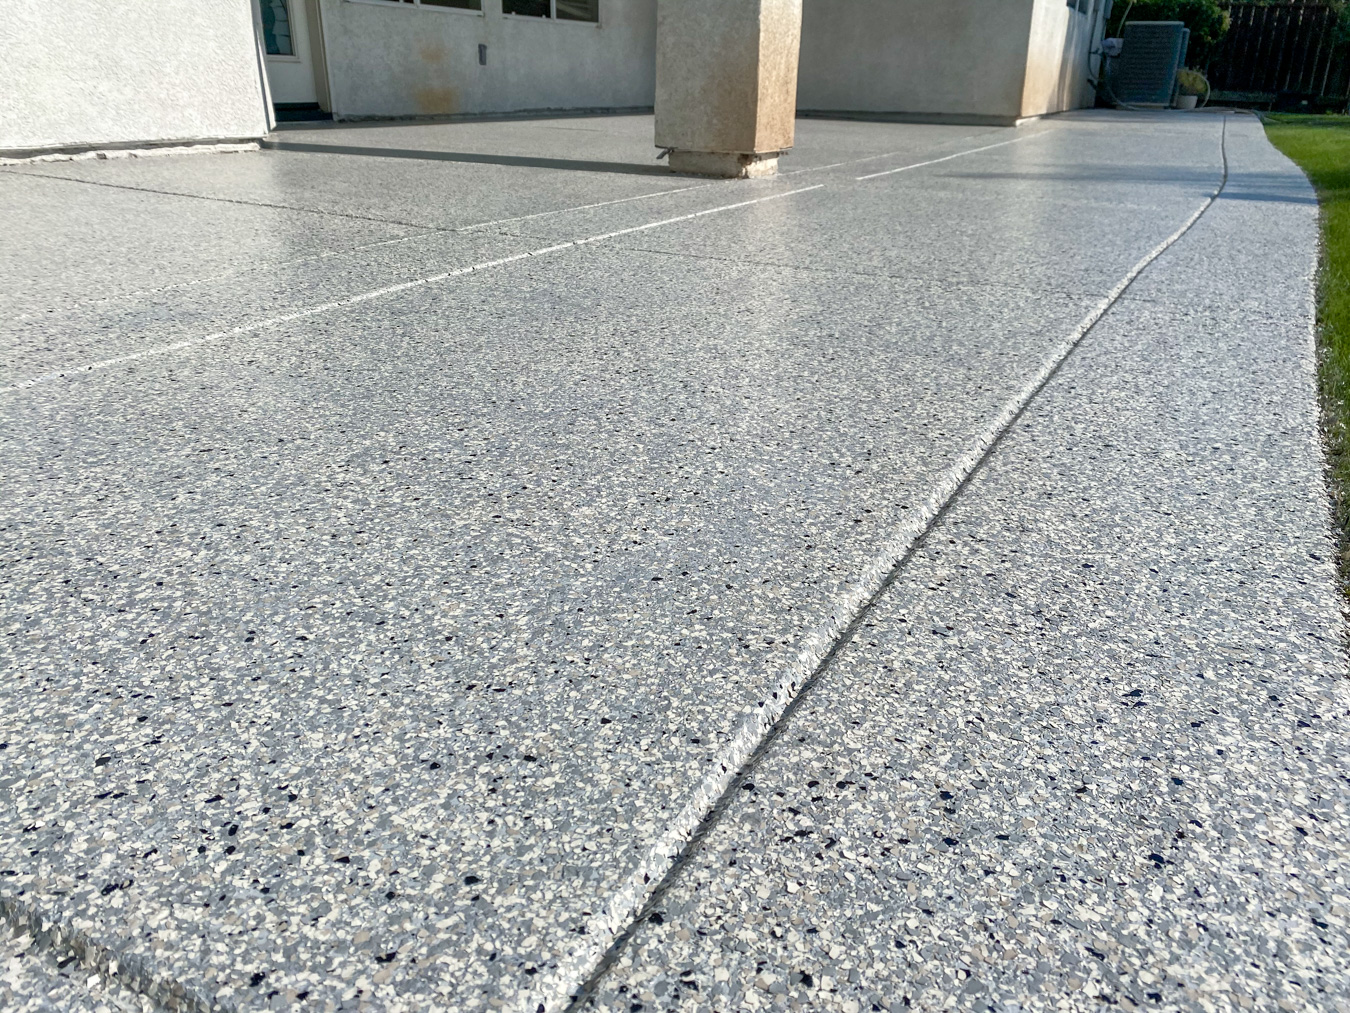 Close-up of deck after gray epoxy concrete coating applied